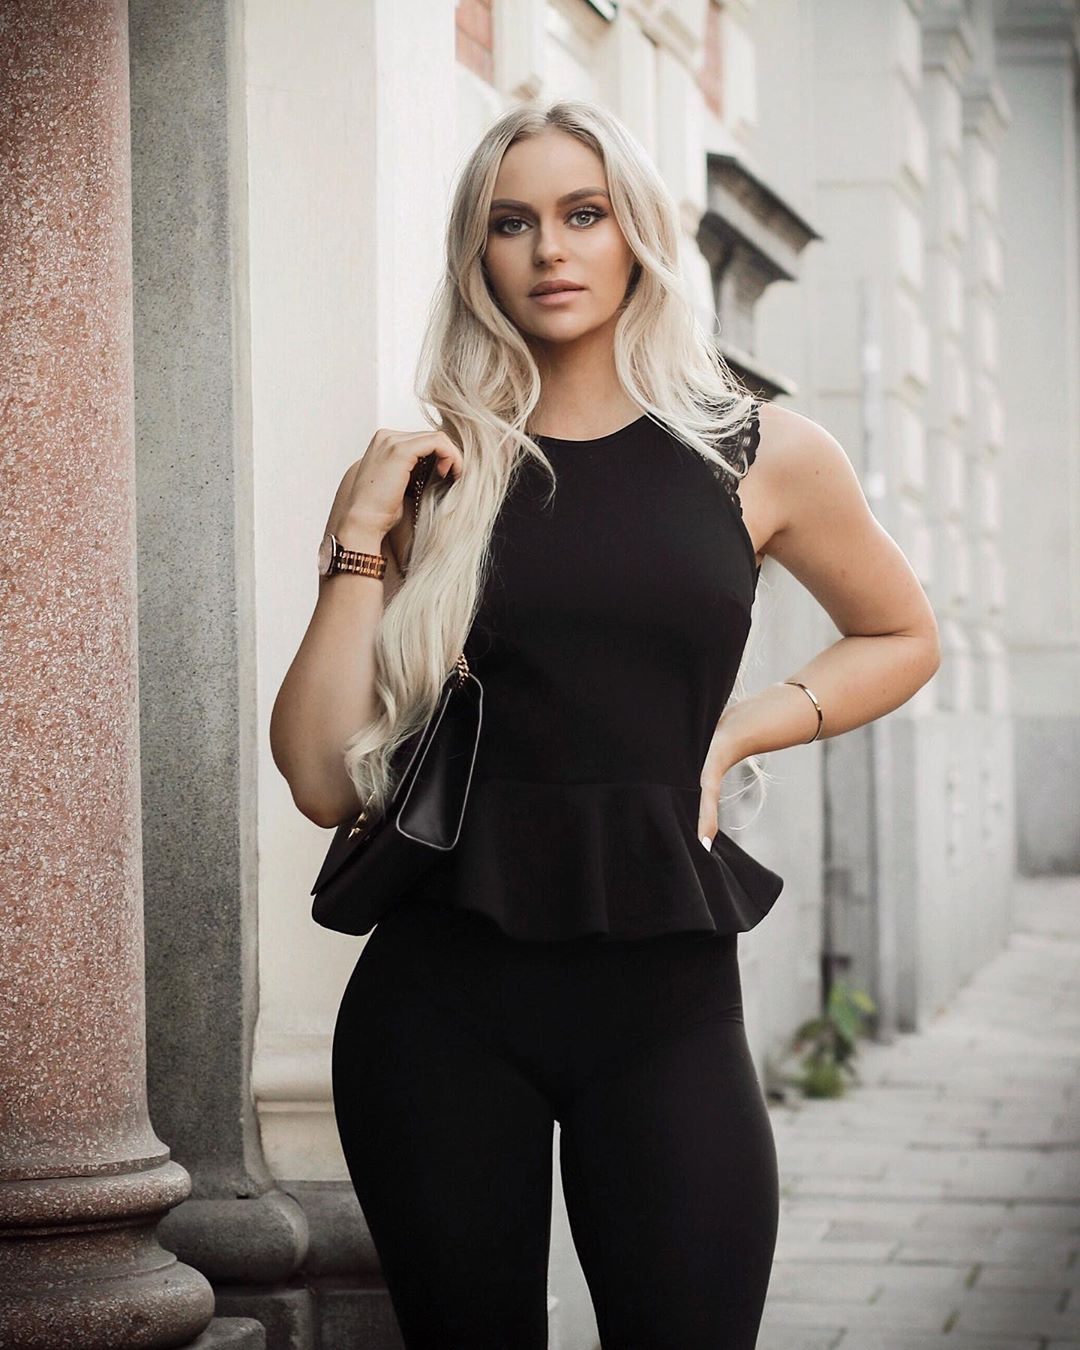 Anna Nystrom Instagram Pictures, Anna Nystrom, Photo shoot